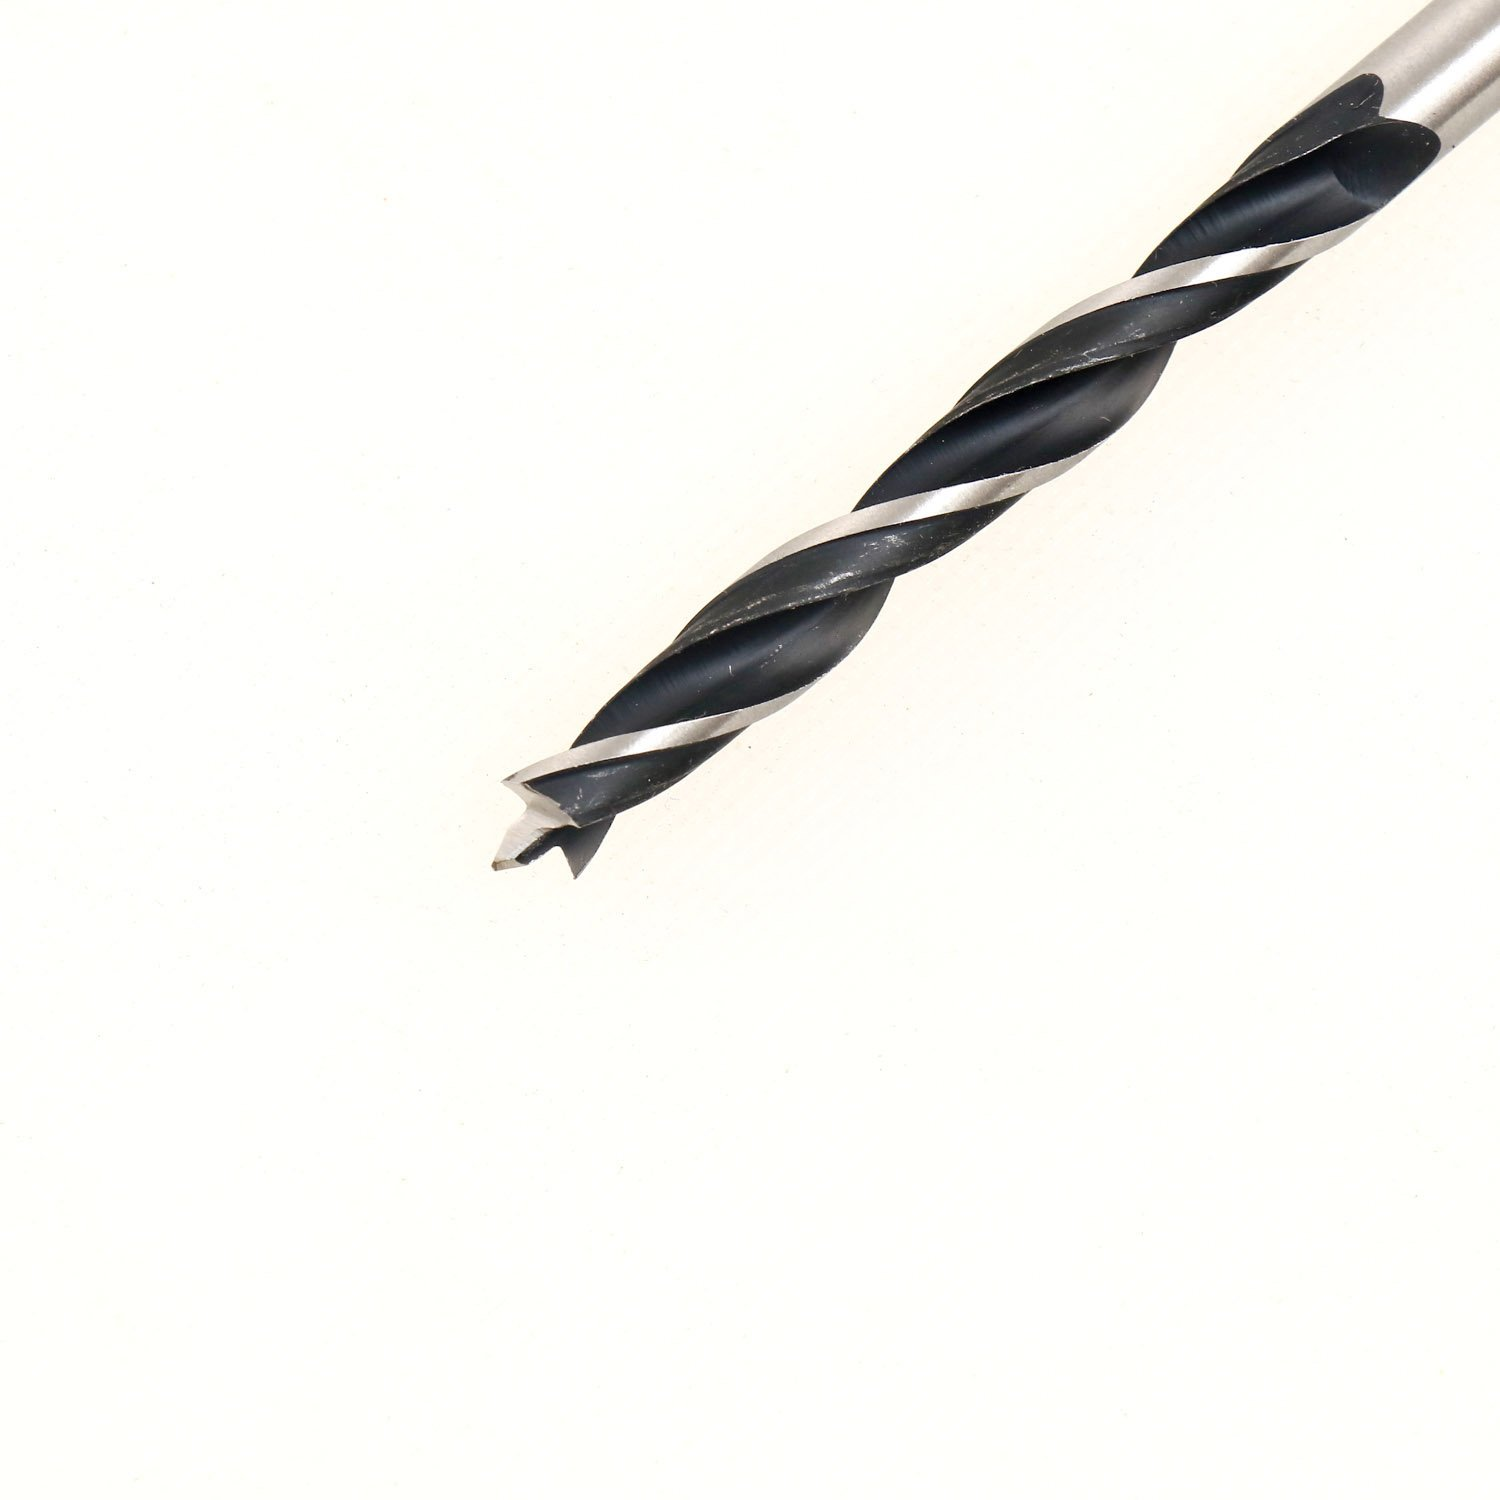 Choose Your Size Legacy Woodturning Drill Bits for Pen Kit Making